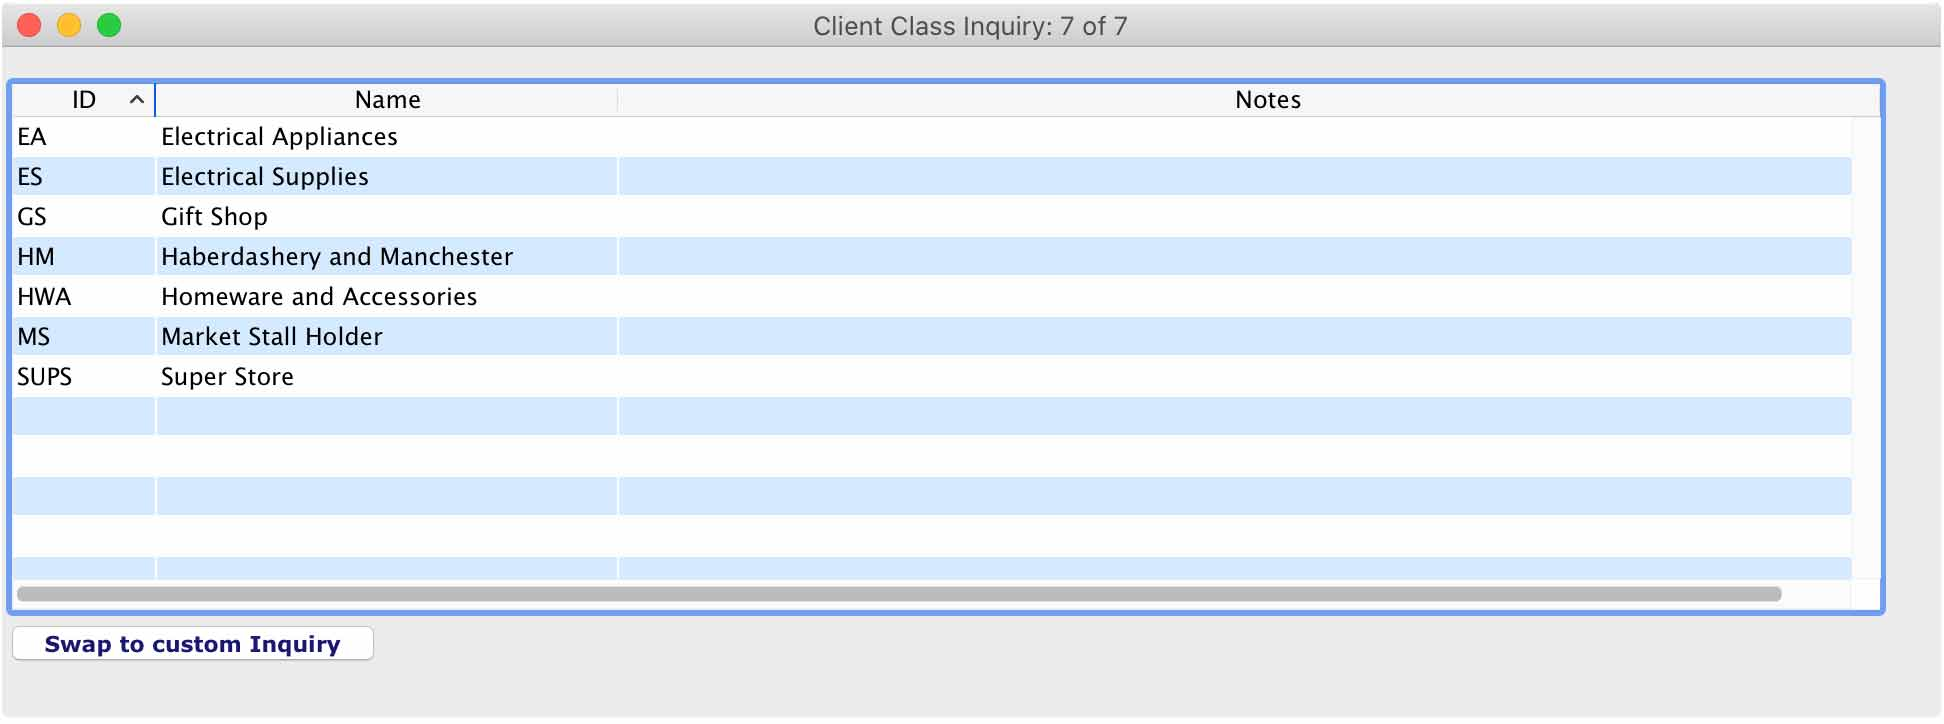 clients-class-inquiry-mac-2020